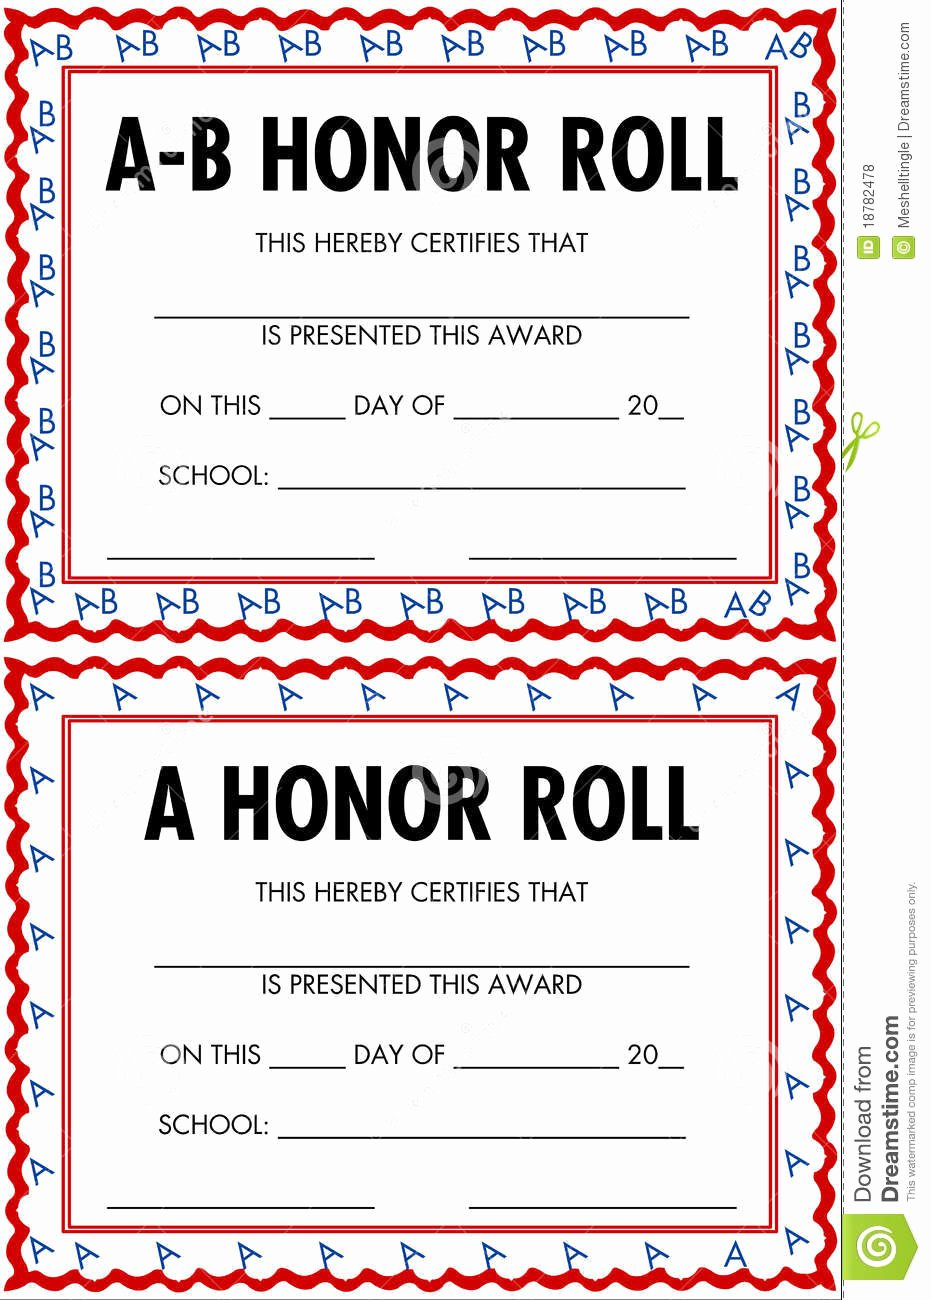 Ab Honor Roll Certificate Template Best Of Honor Roll Certificates Royalty Free Stock S Image